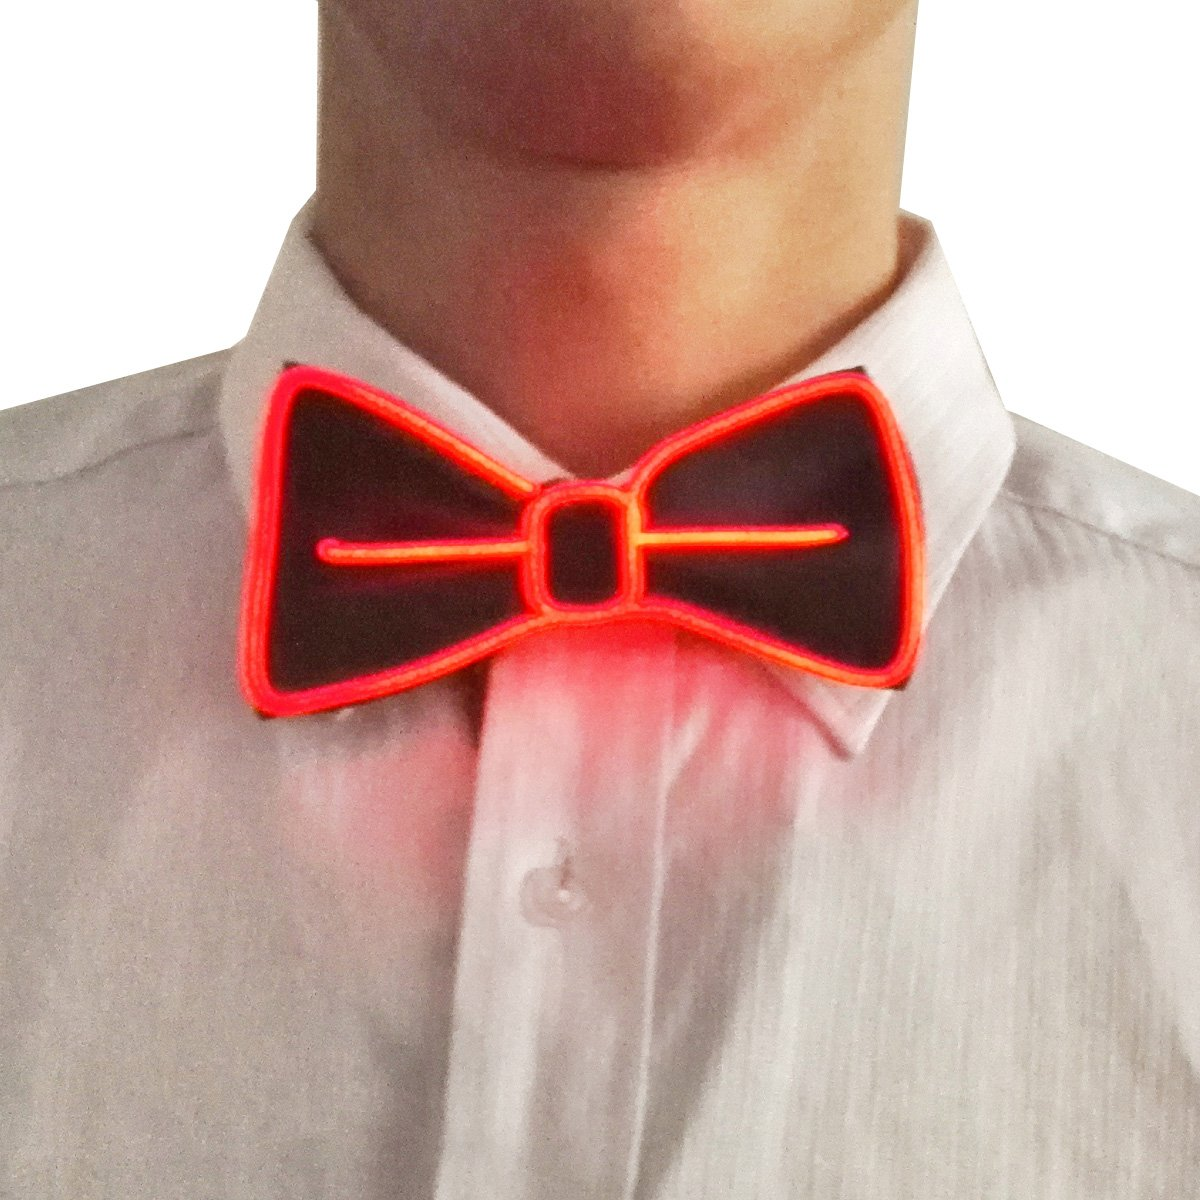 Suncentech Luminous Bow Tie Adjustable Light Up Bow Tie with Switch Controller, One Size, EL Cold Light, Novelty Dancing Party Décor (Blue)